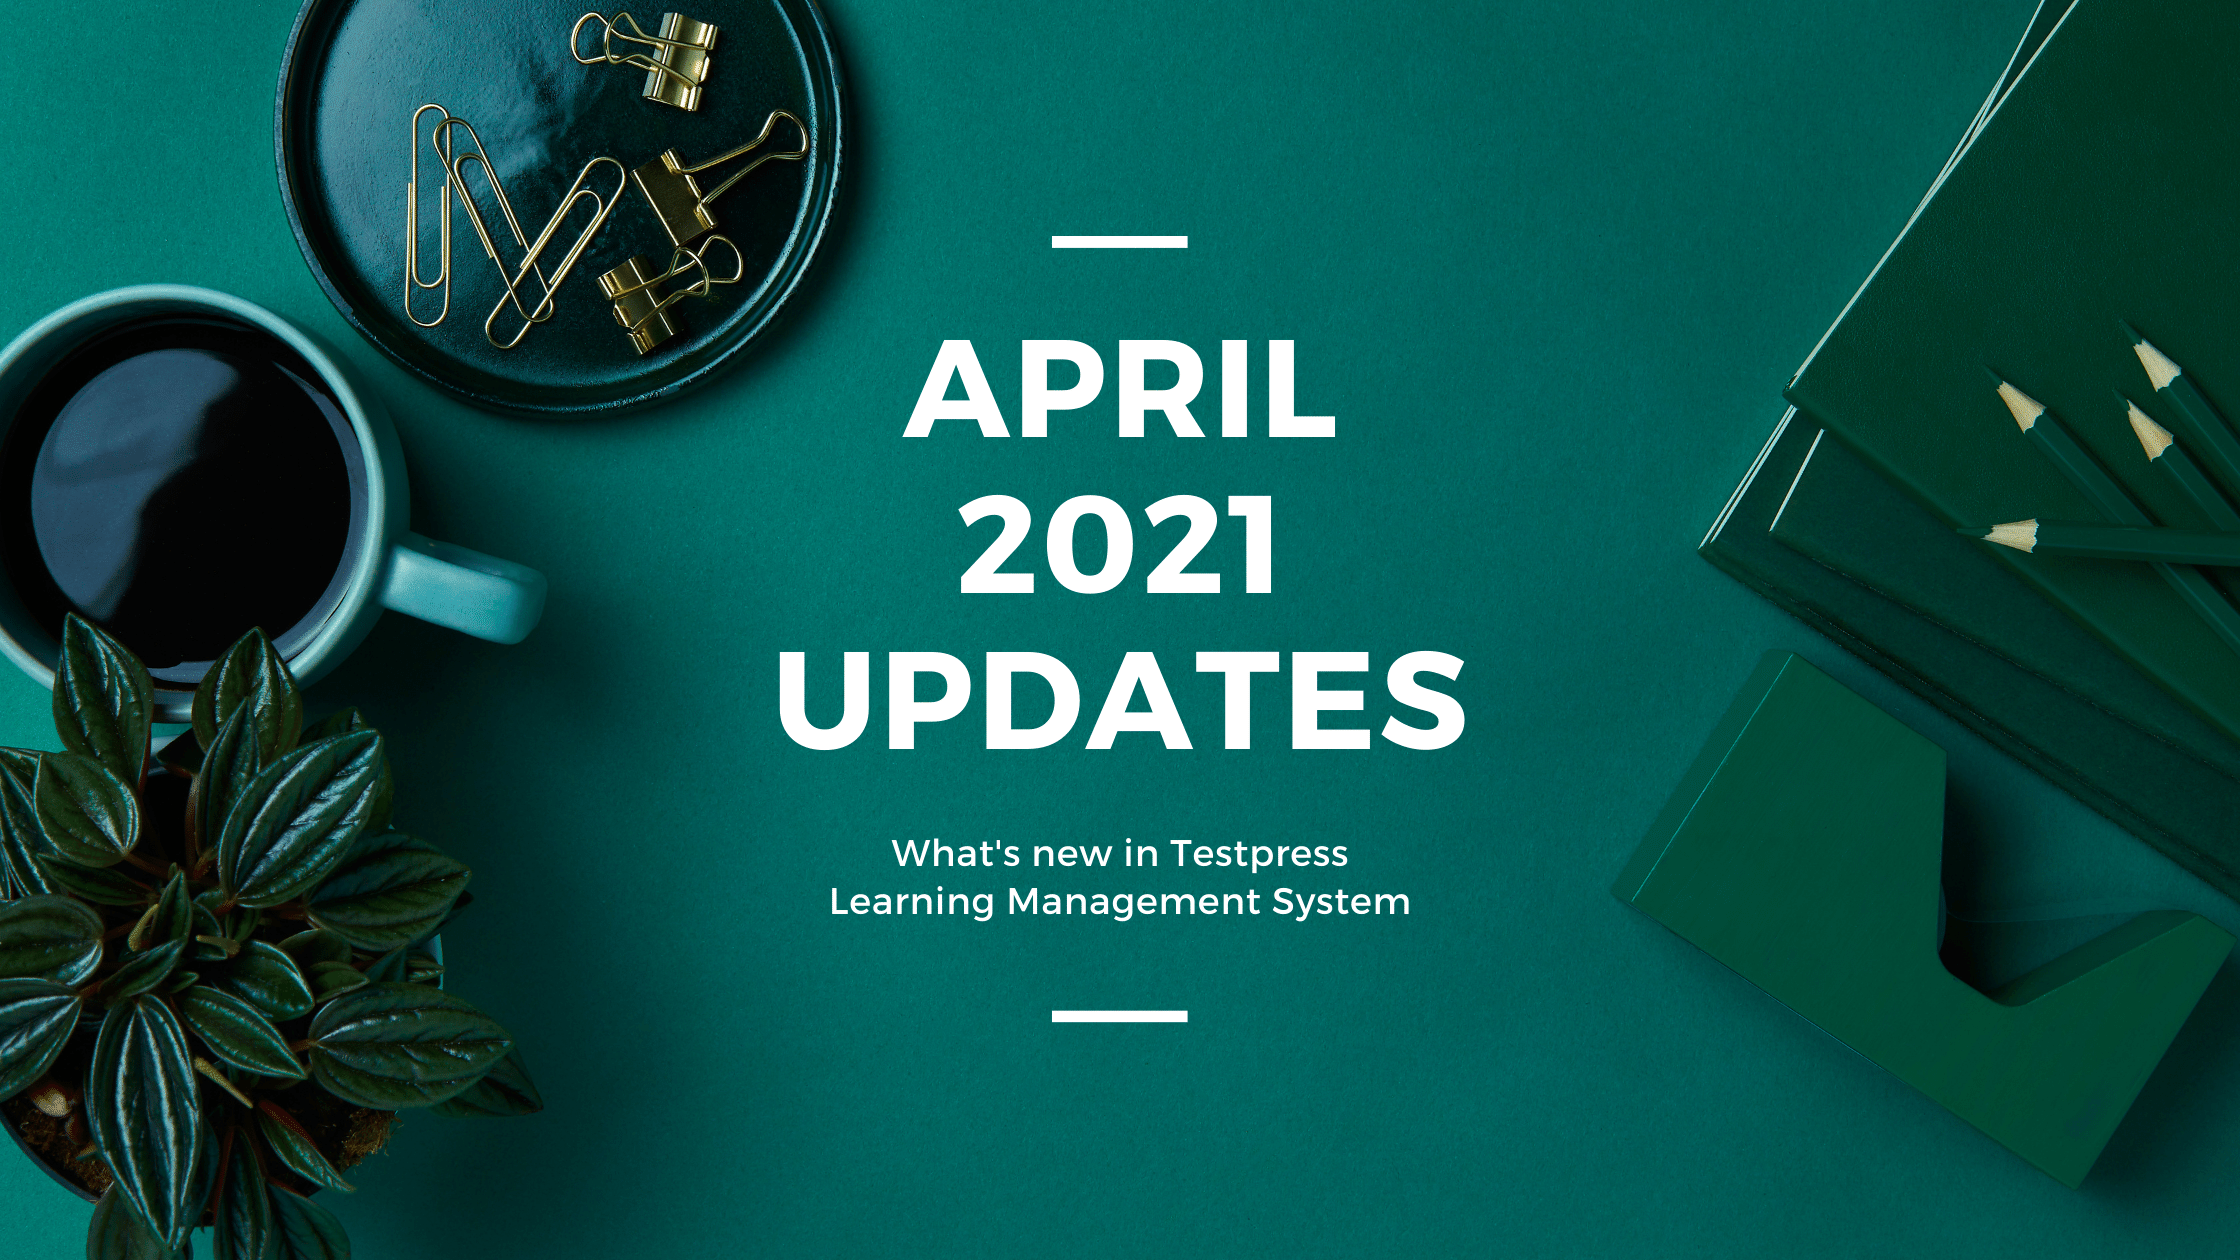 What's new in Testpress Learning Management System - April 2021